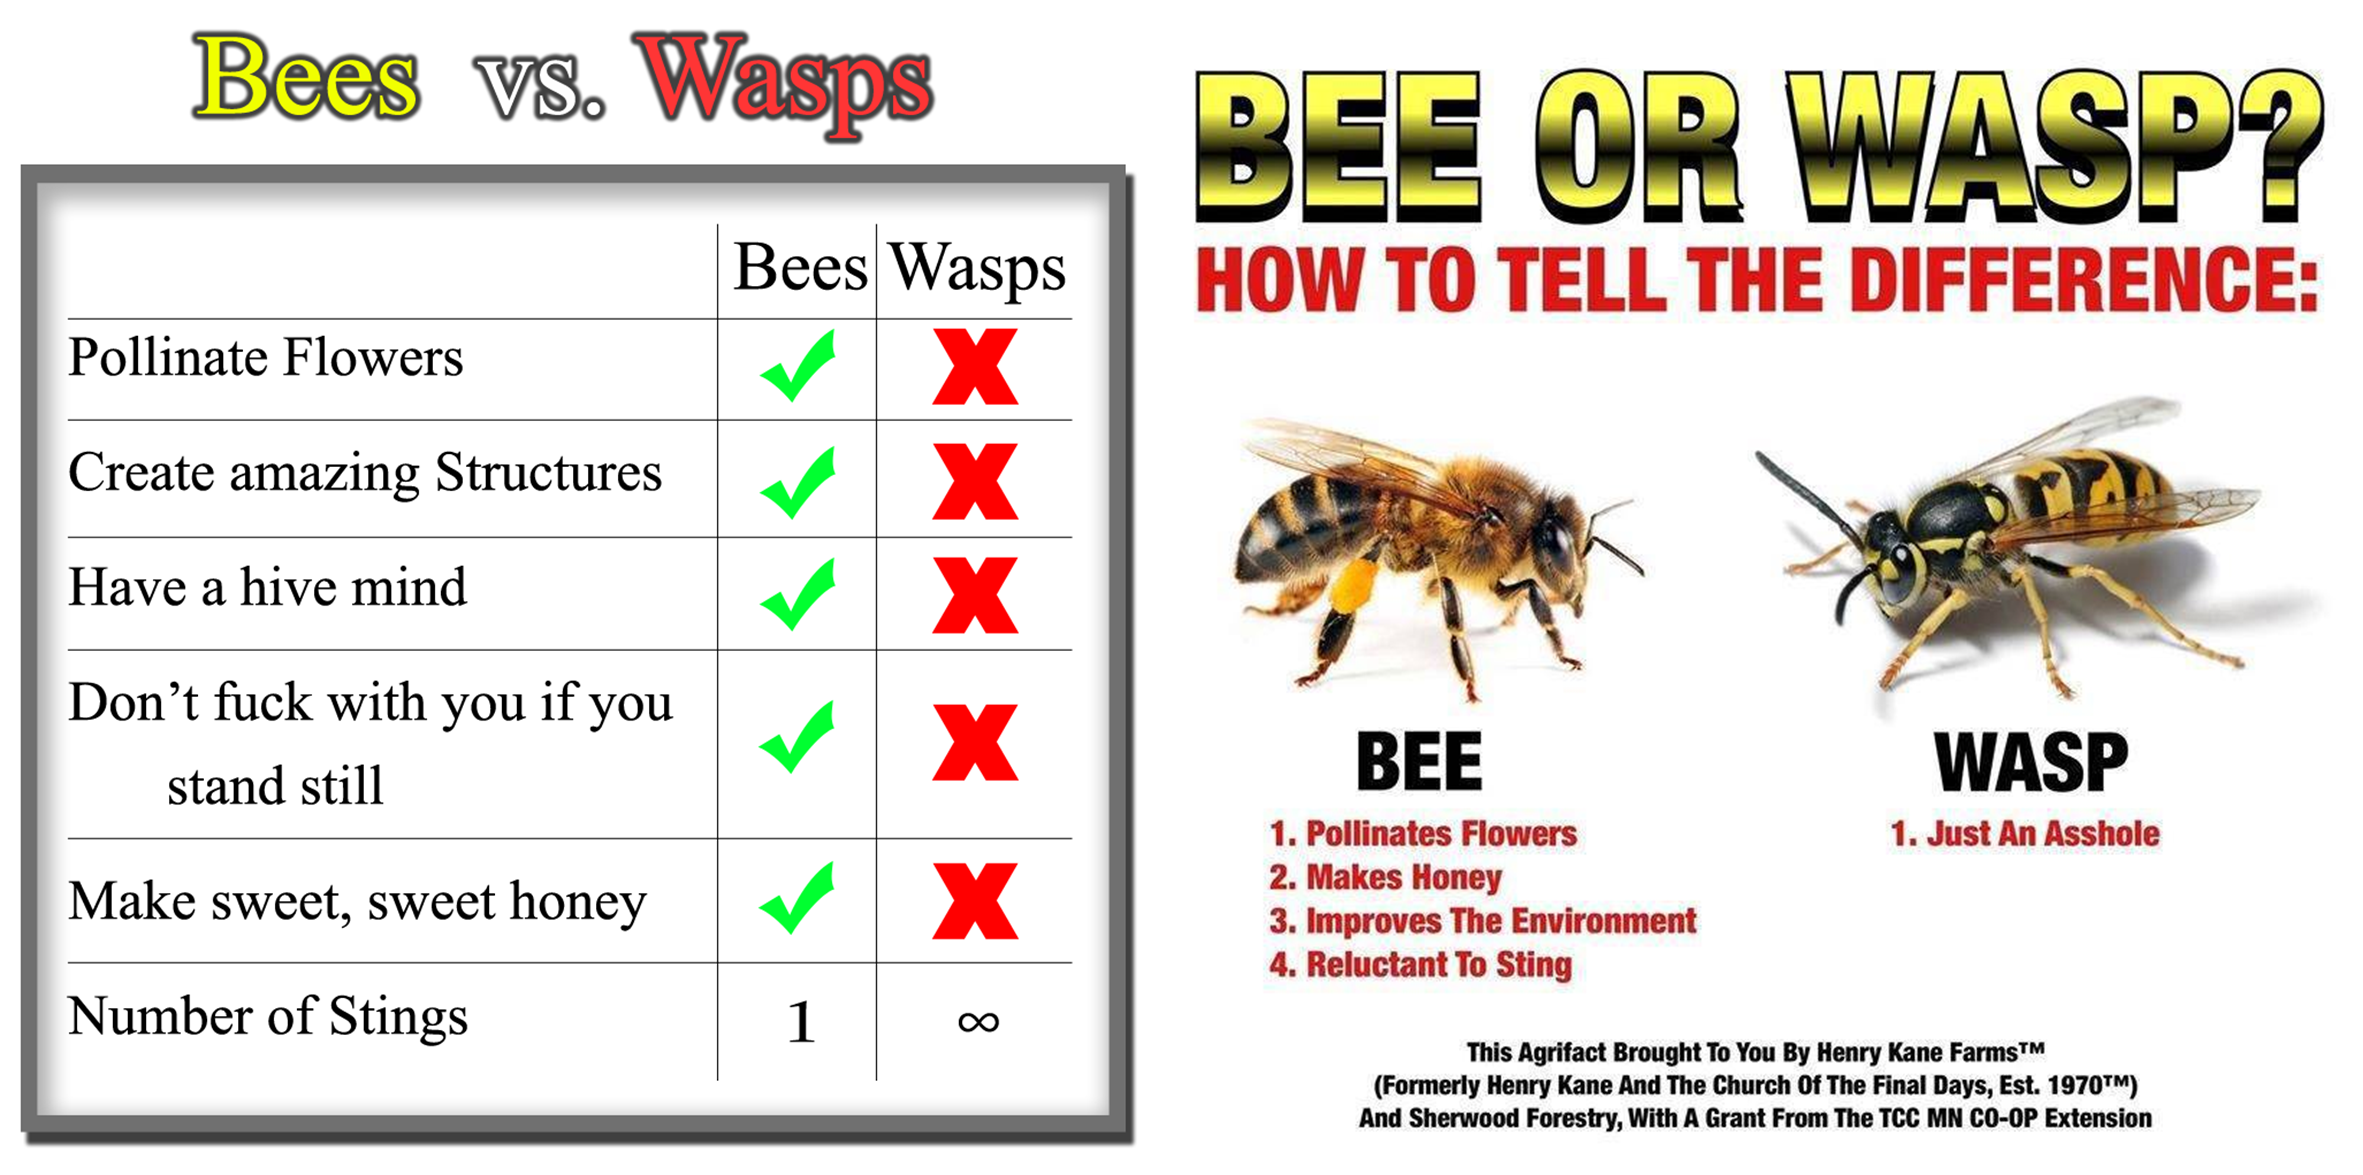 Wasps Are Jerks